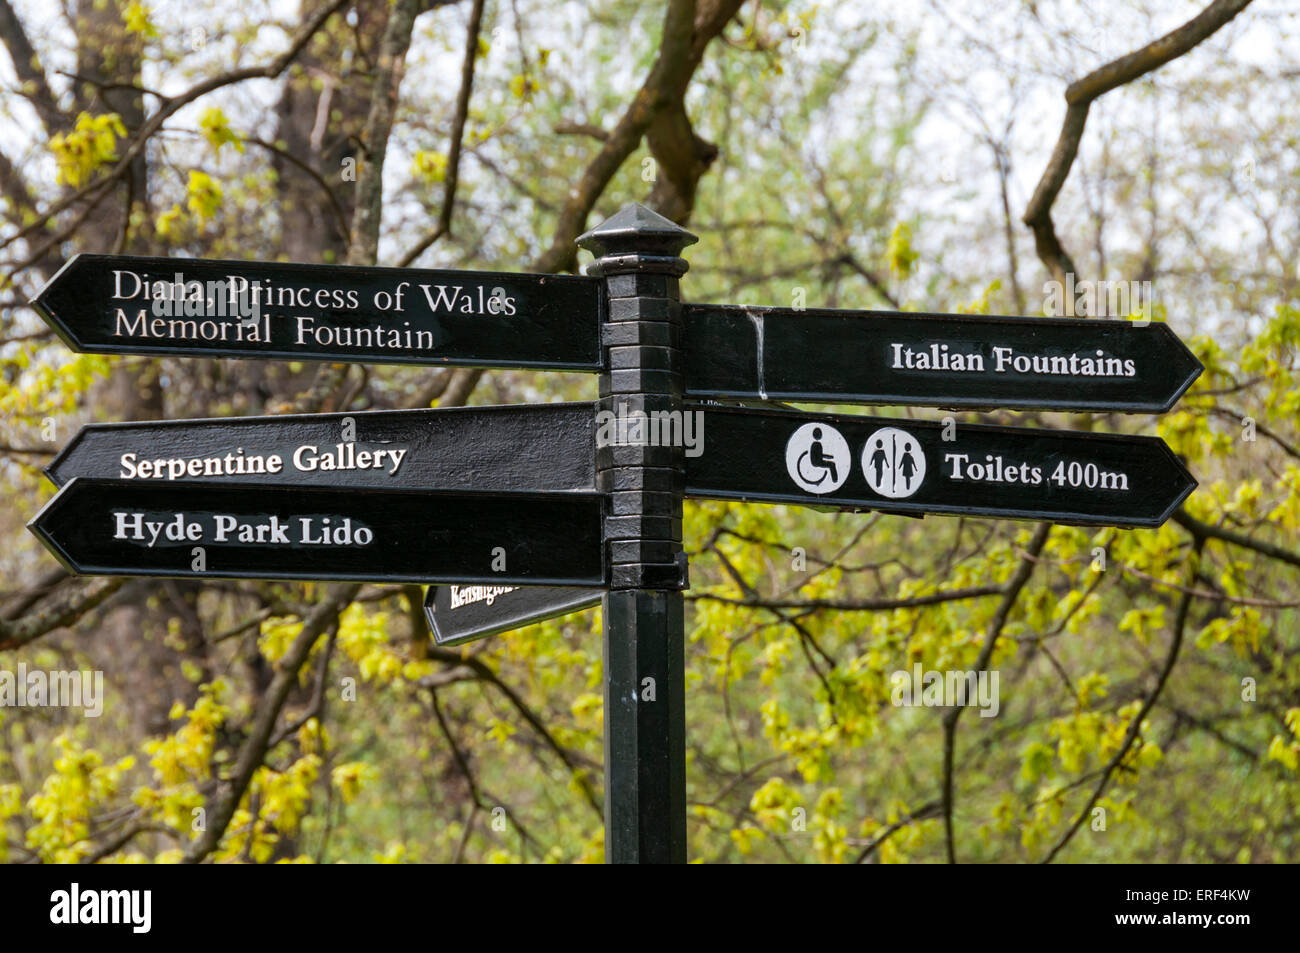 A sign post pointing to various attractions and points of interest in Kensington Gardens, London. - Stock Image